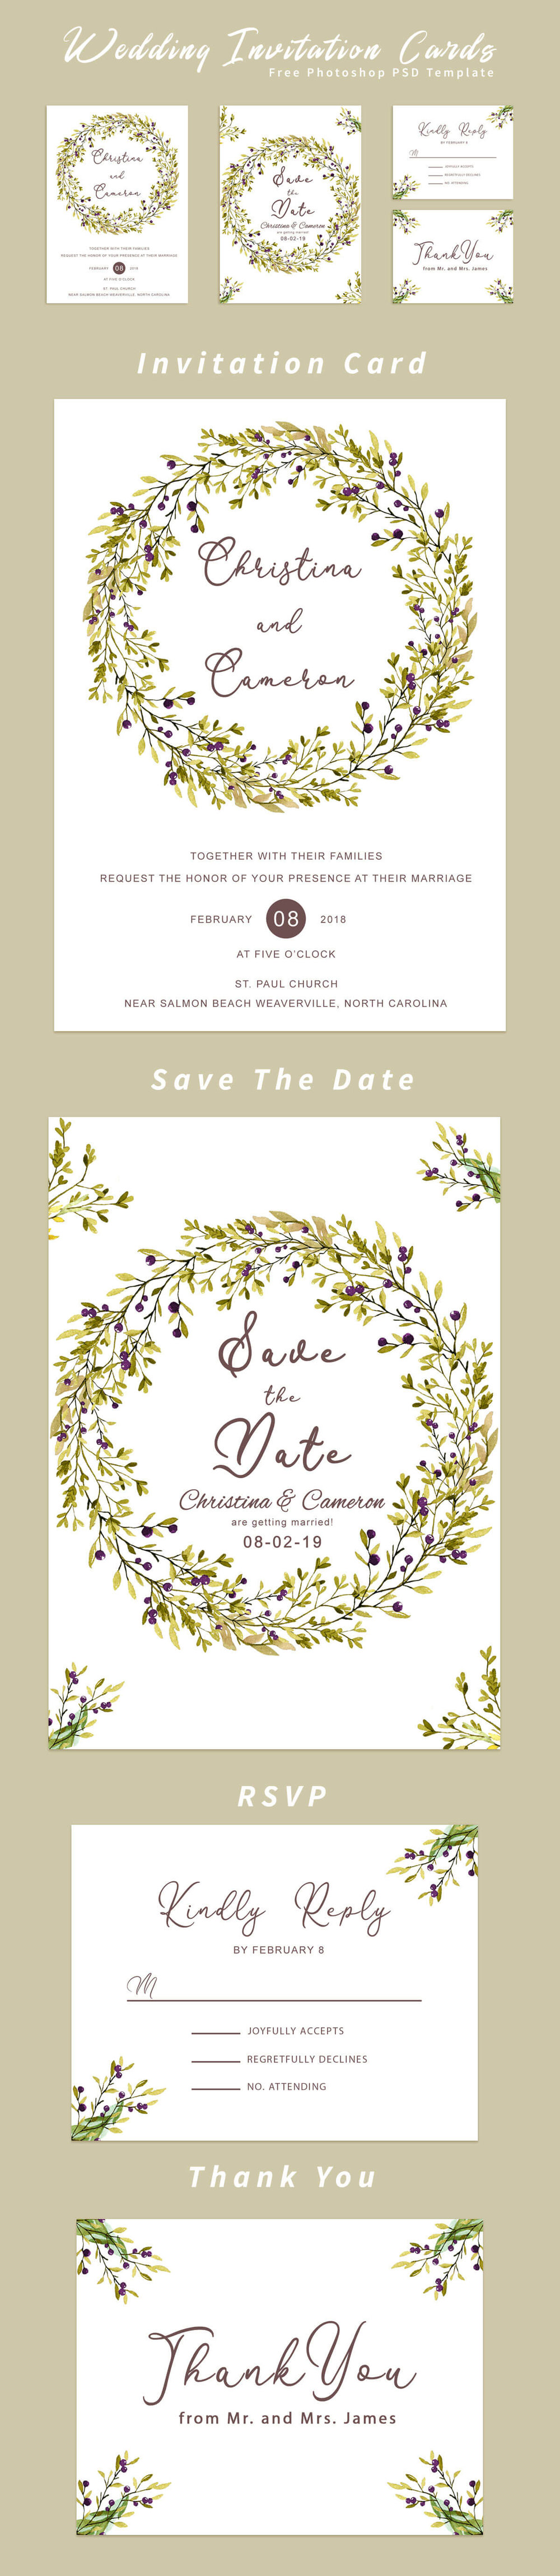 Free #Wedding #Invitation Card #Template is an eye-catching collection of invitation for your wedding celebration.